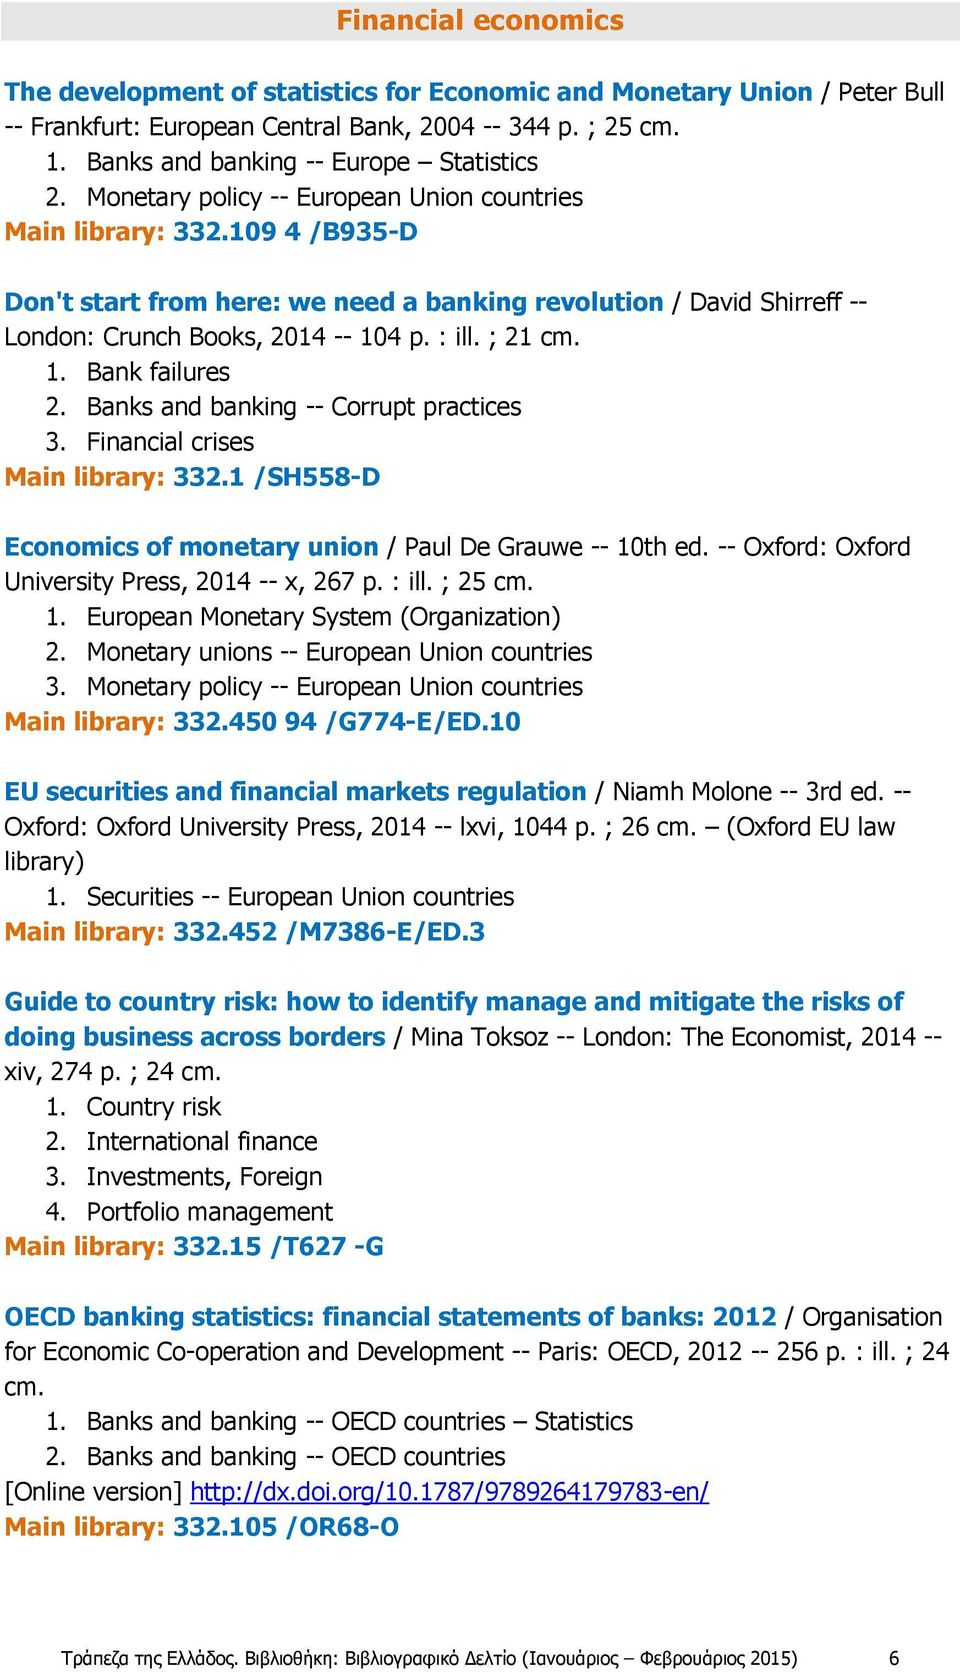 1. Bank failures 2. Banks and banking -- Corrupt practices 3. Financial crises Main library: 332.1 /SH558-D Economics of monetary union / Paul De Grauwe -- 10th ed.